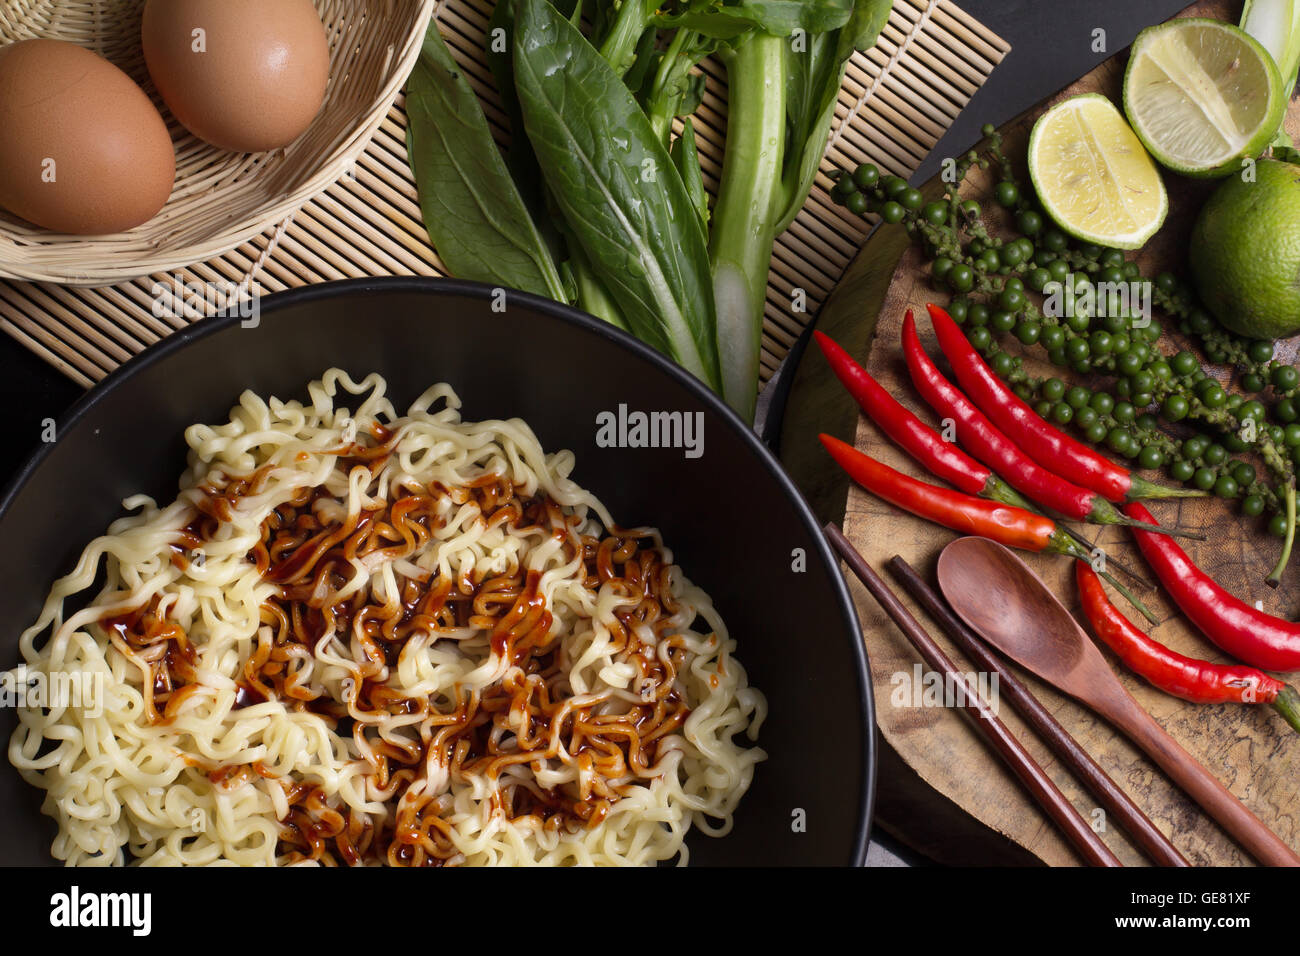 noodles in black bowl garnished on kitchen table Stock Photo